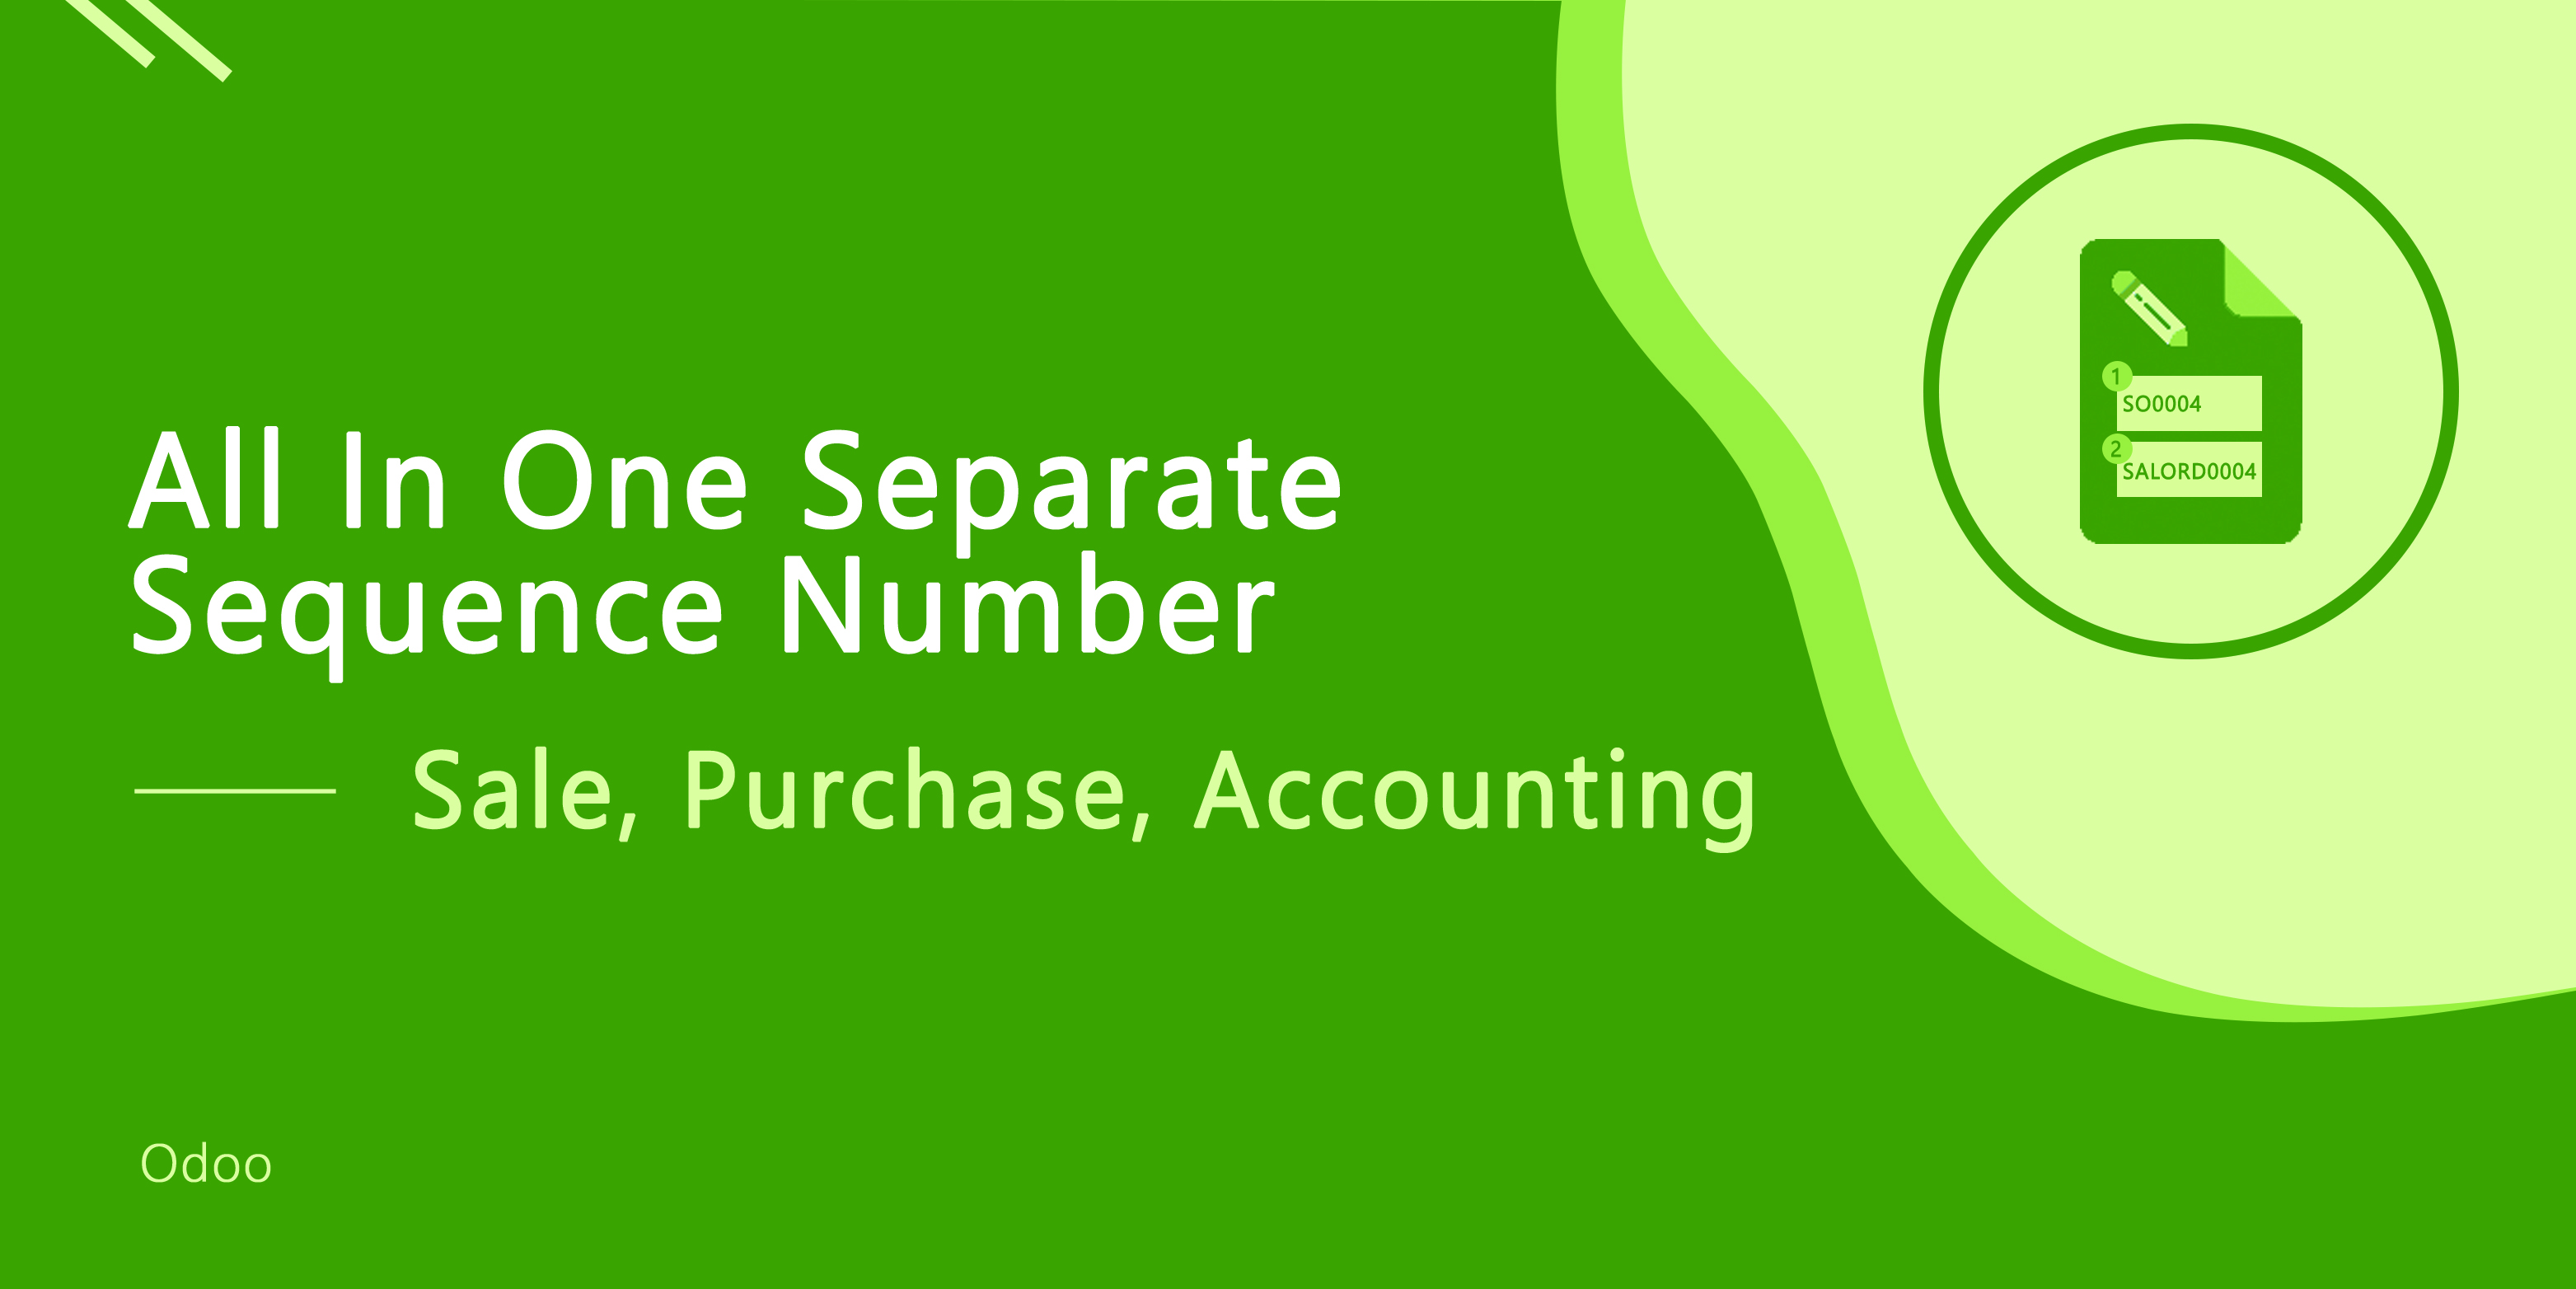 Separate Sequence Number - Accounting, Purchase, Sale